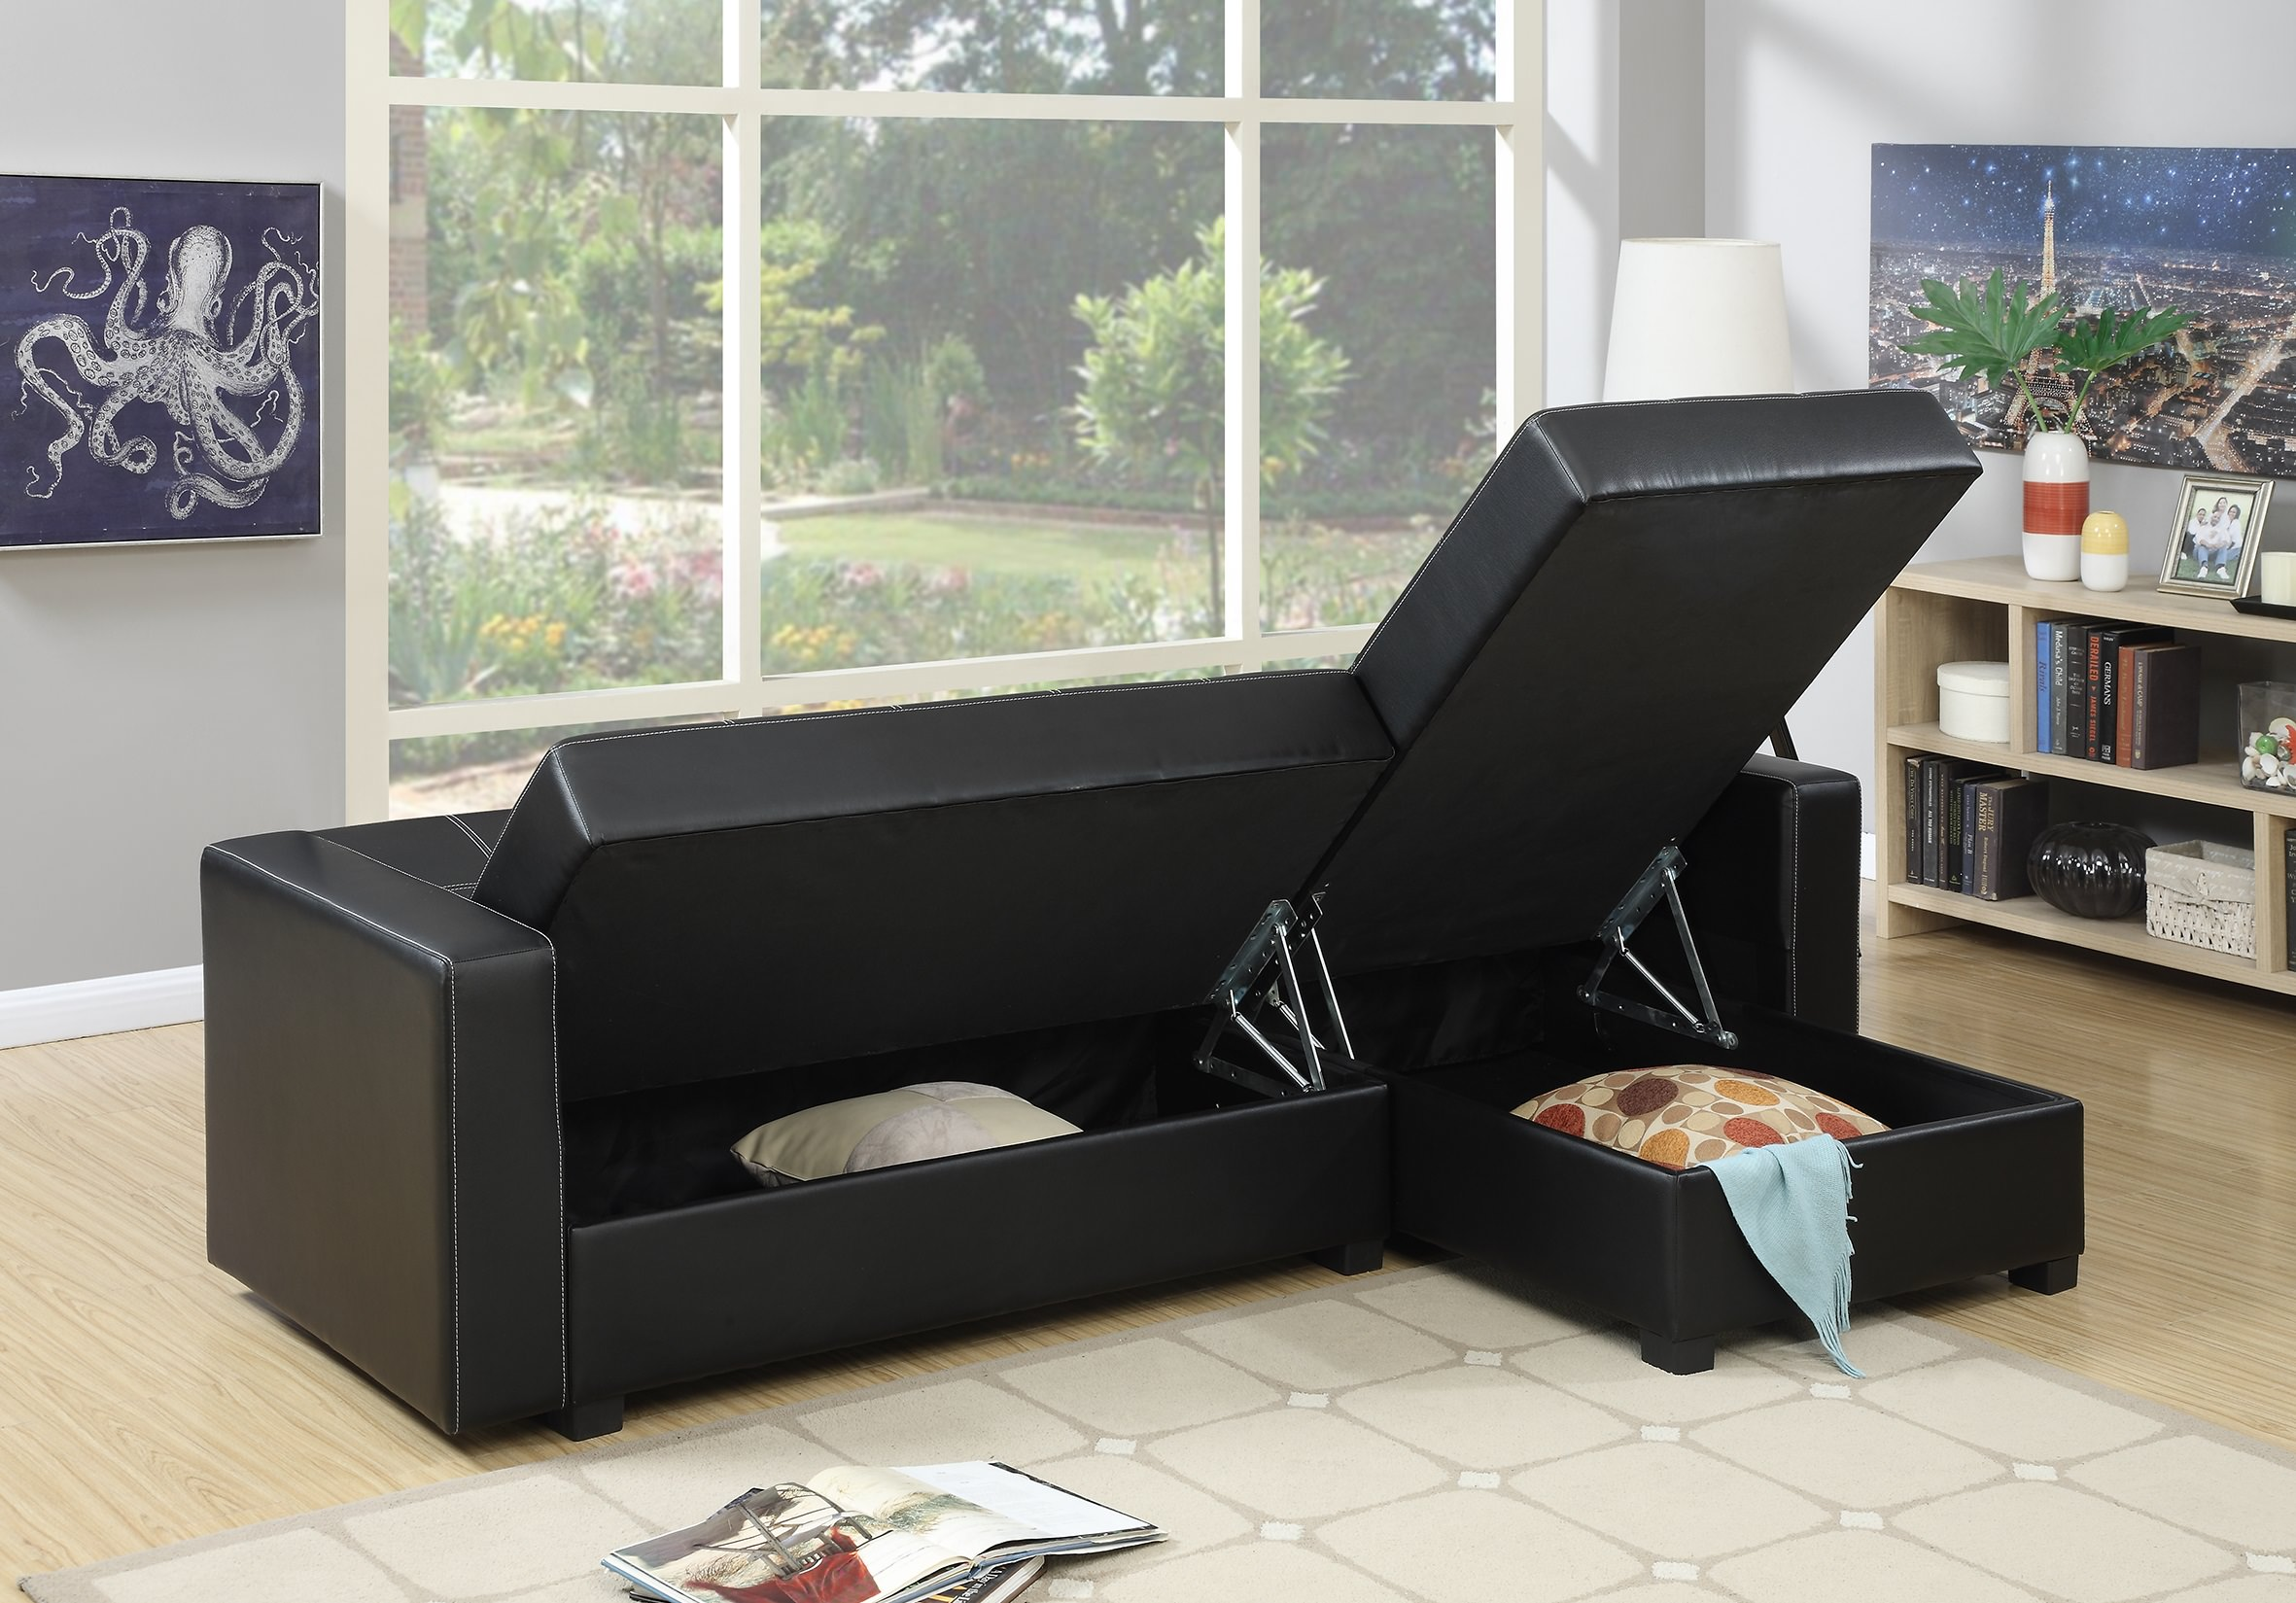 F7894 Black Reversible Chaise Adjustable Sofa by Poundex